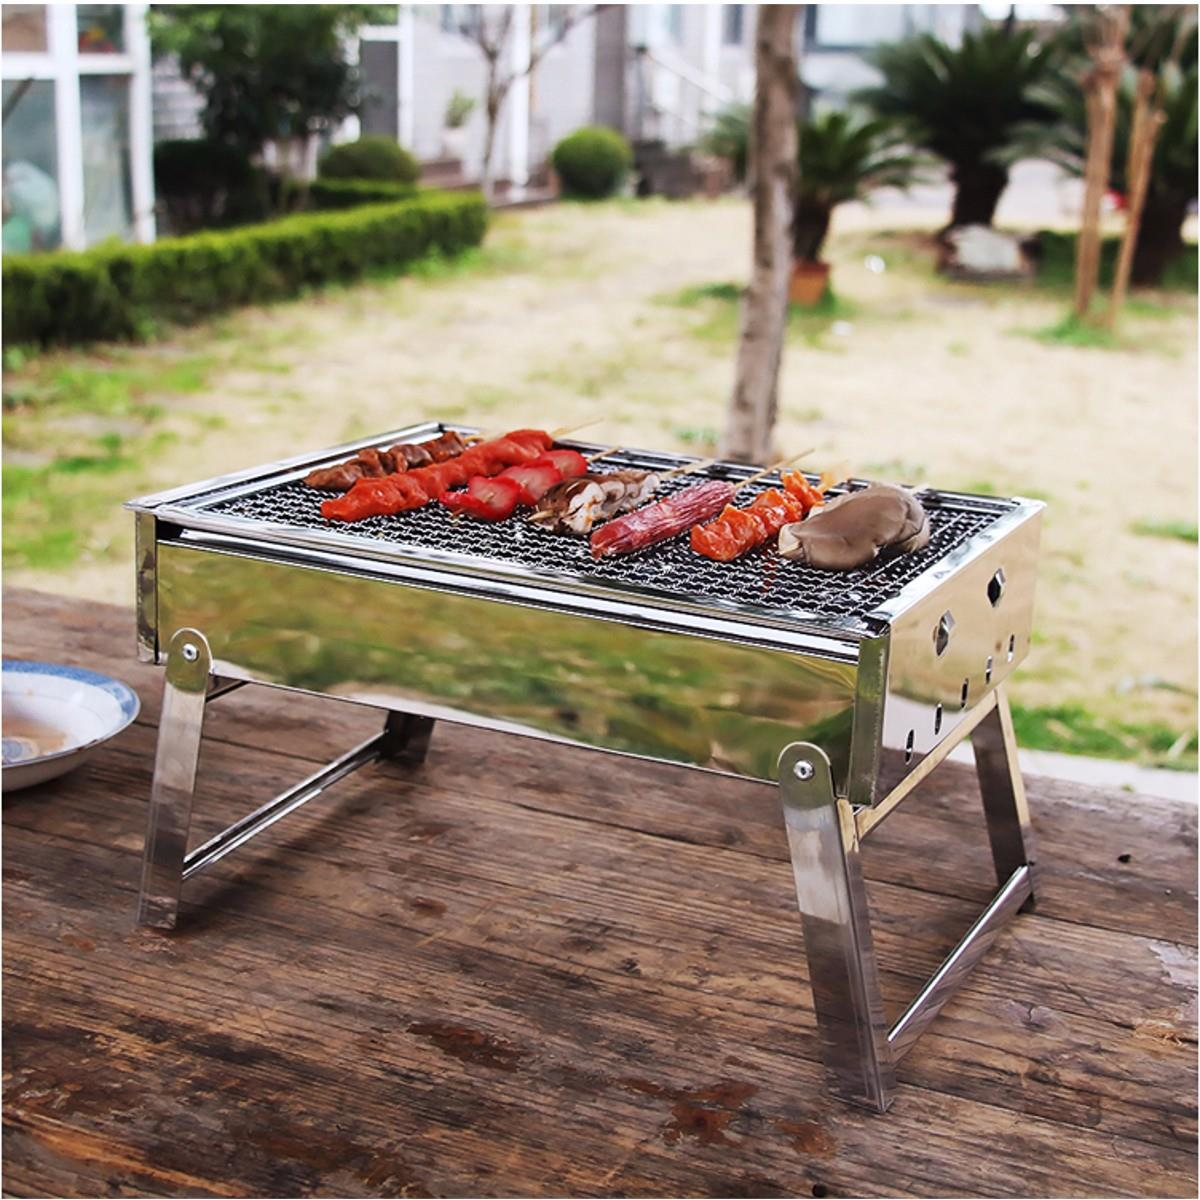 Portable Stainless Steel Grill Stove Rack Pan Roaster Outdoor Charcoal  Barbecue Home Oven Set Cooking Picnic BBQ Camping In BBQ Grills From Home U0026  Garden On ...